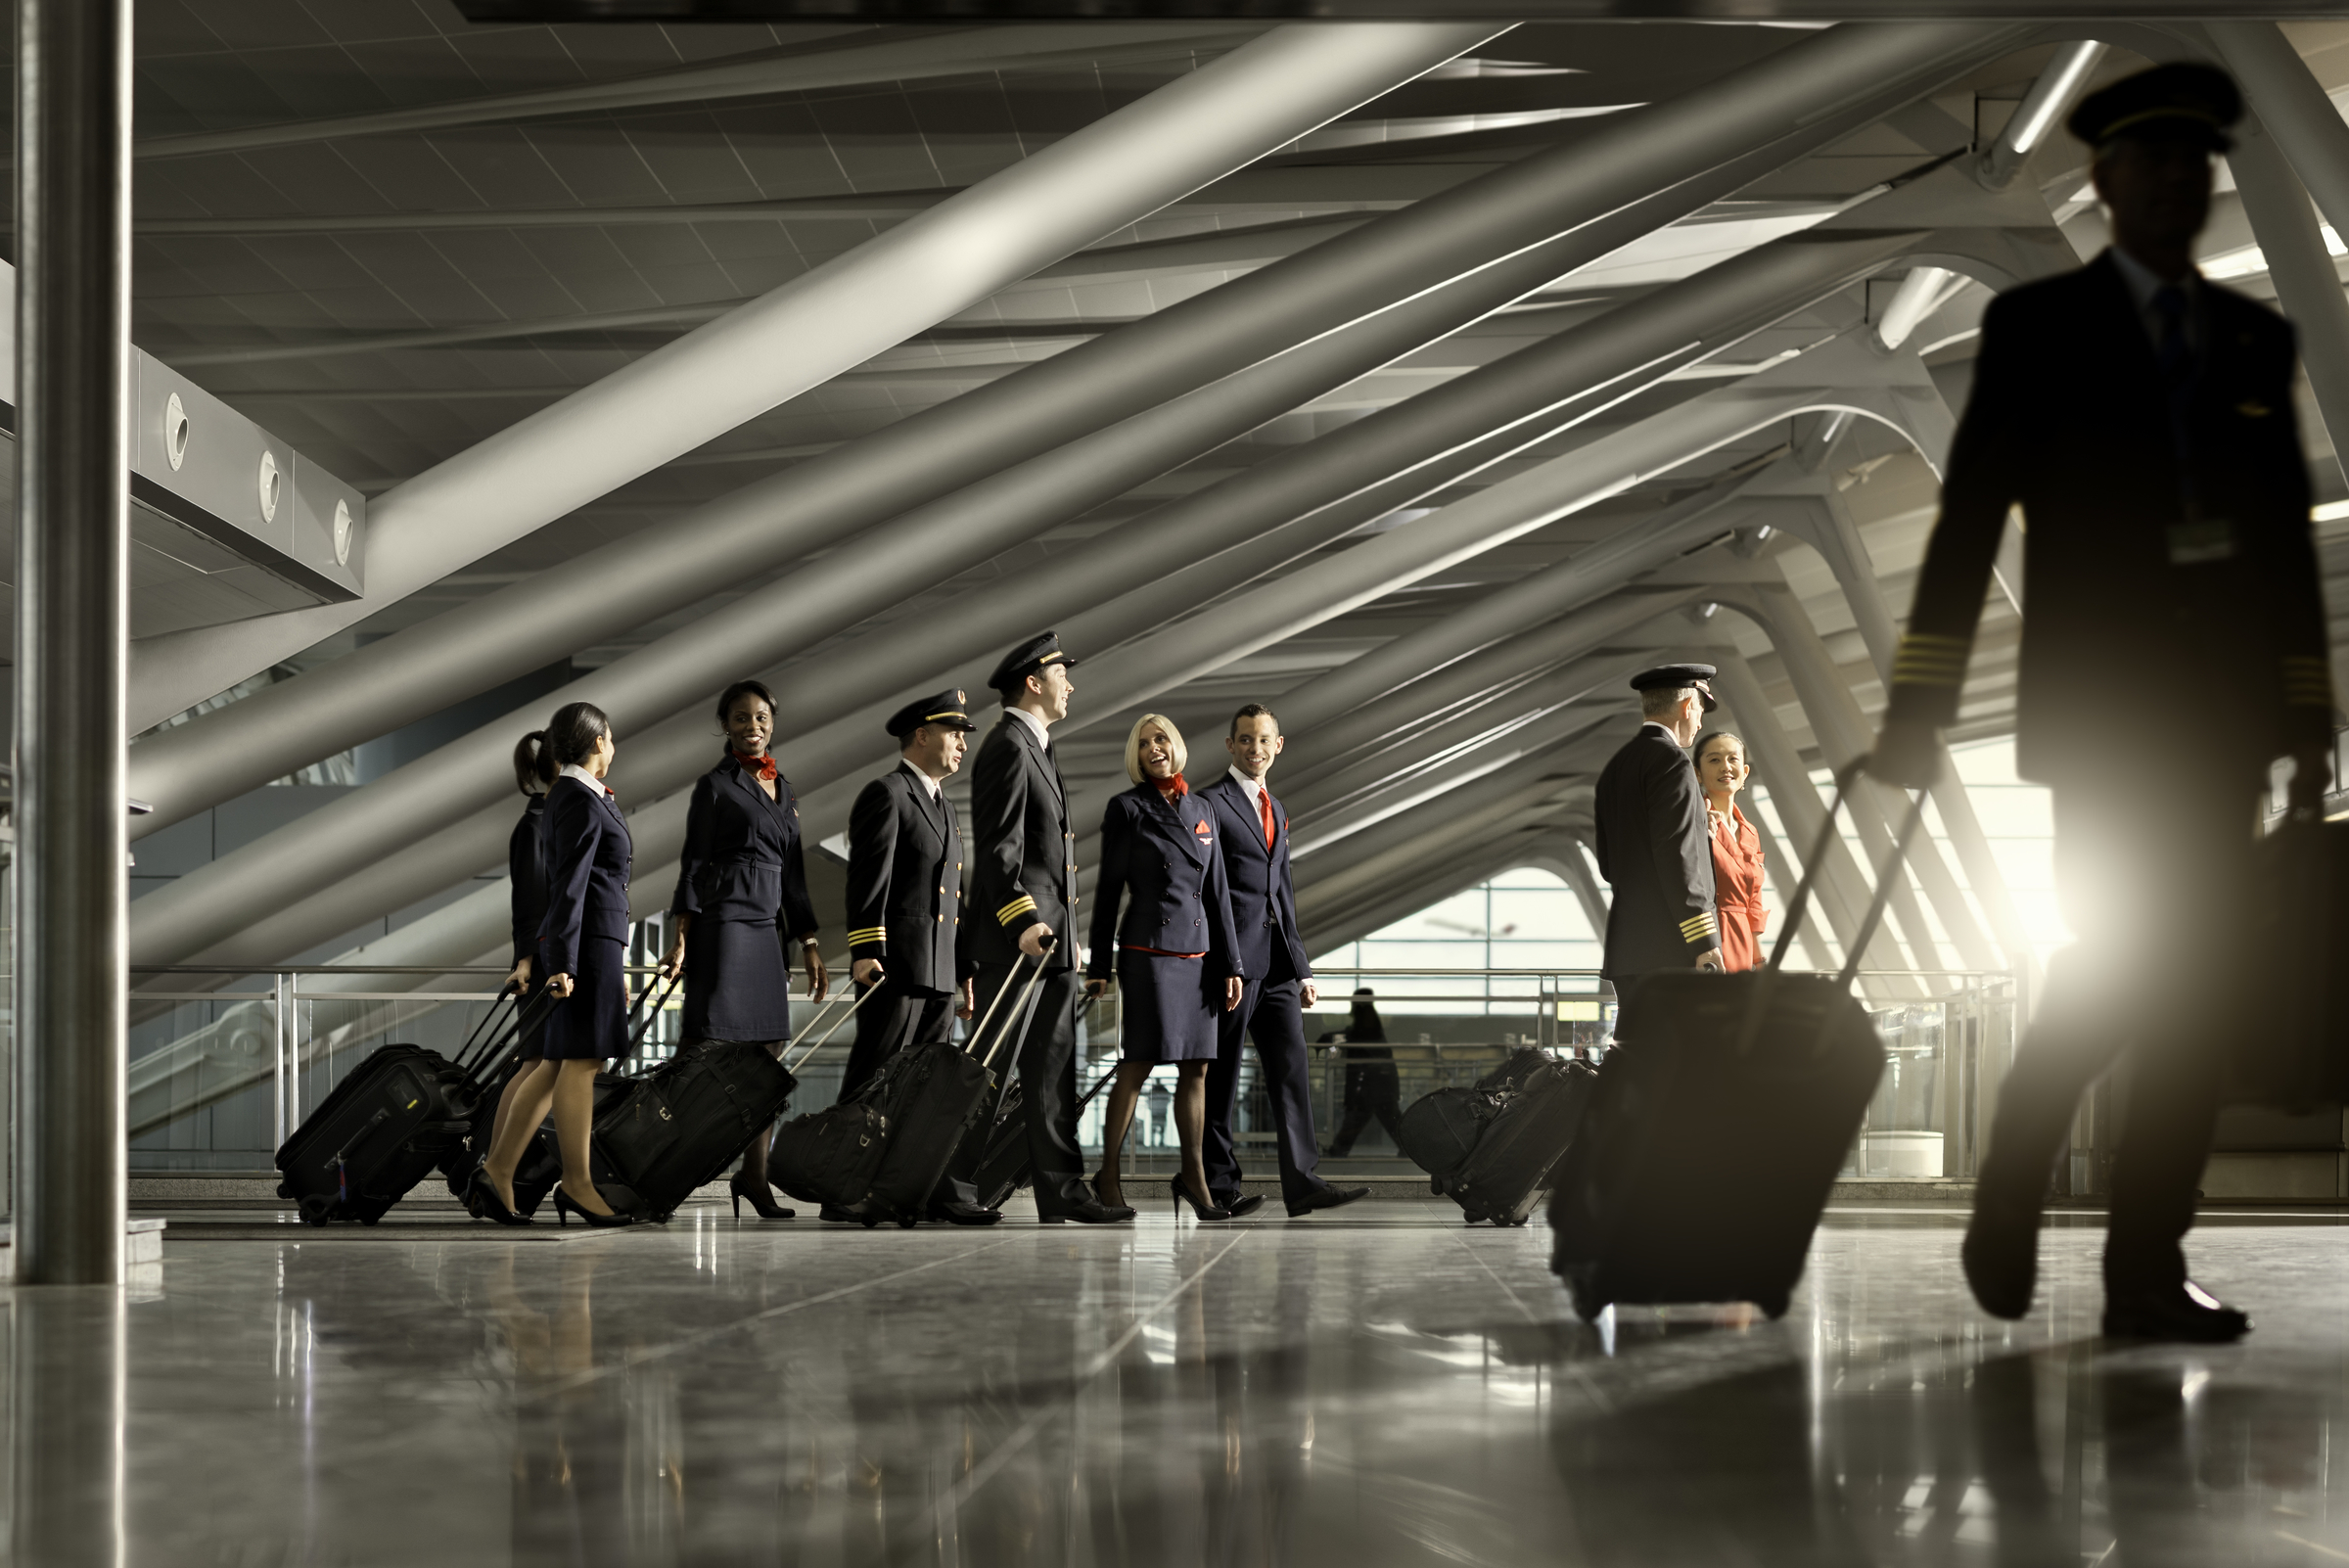 Flight Attendants and Pilots walking through airport with bags